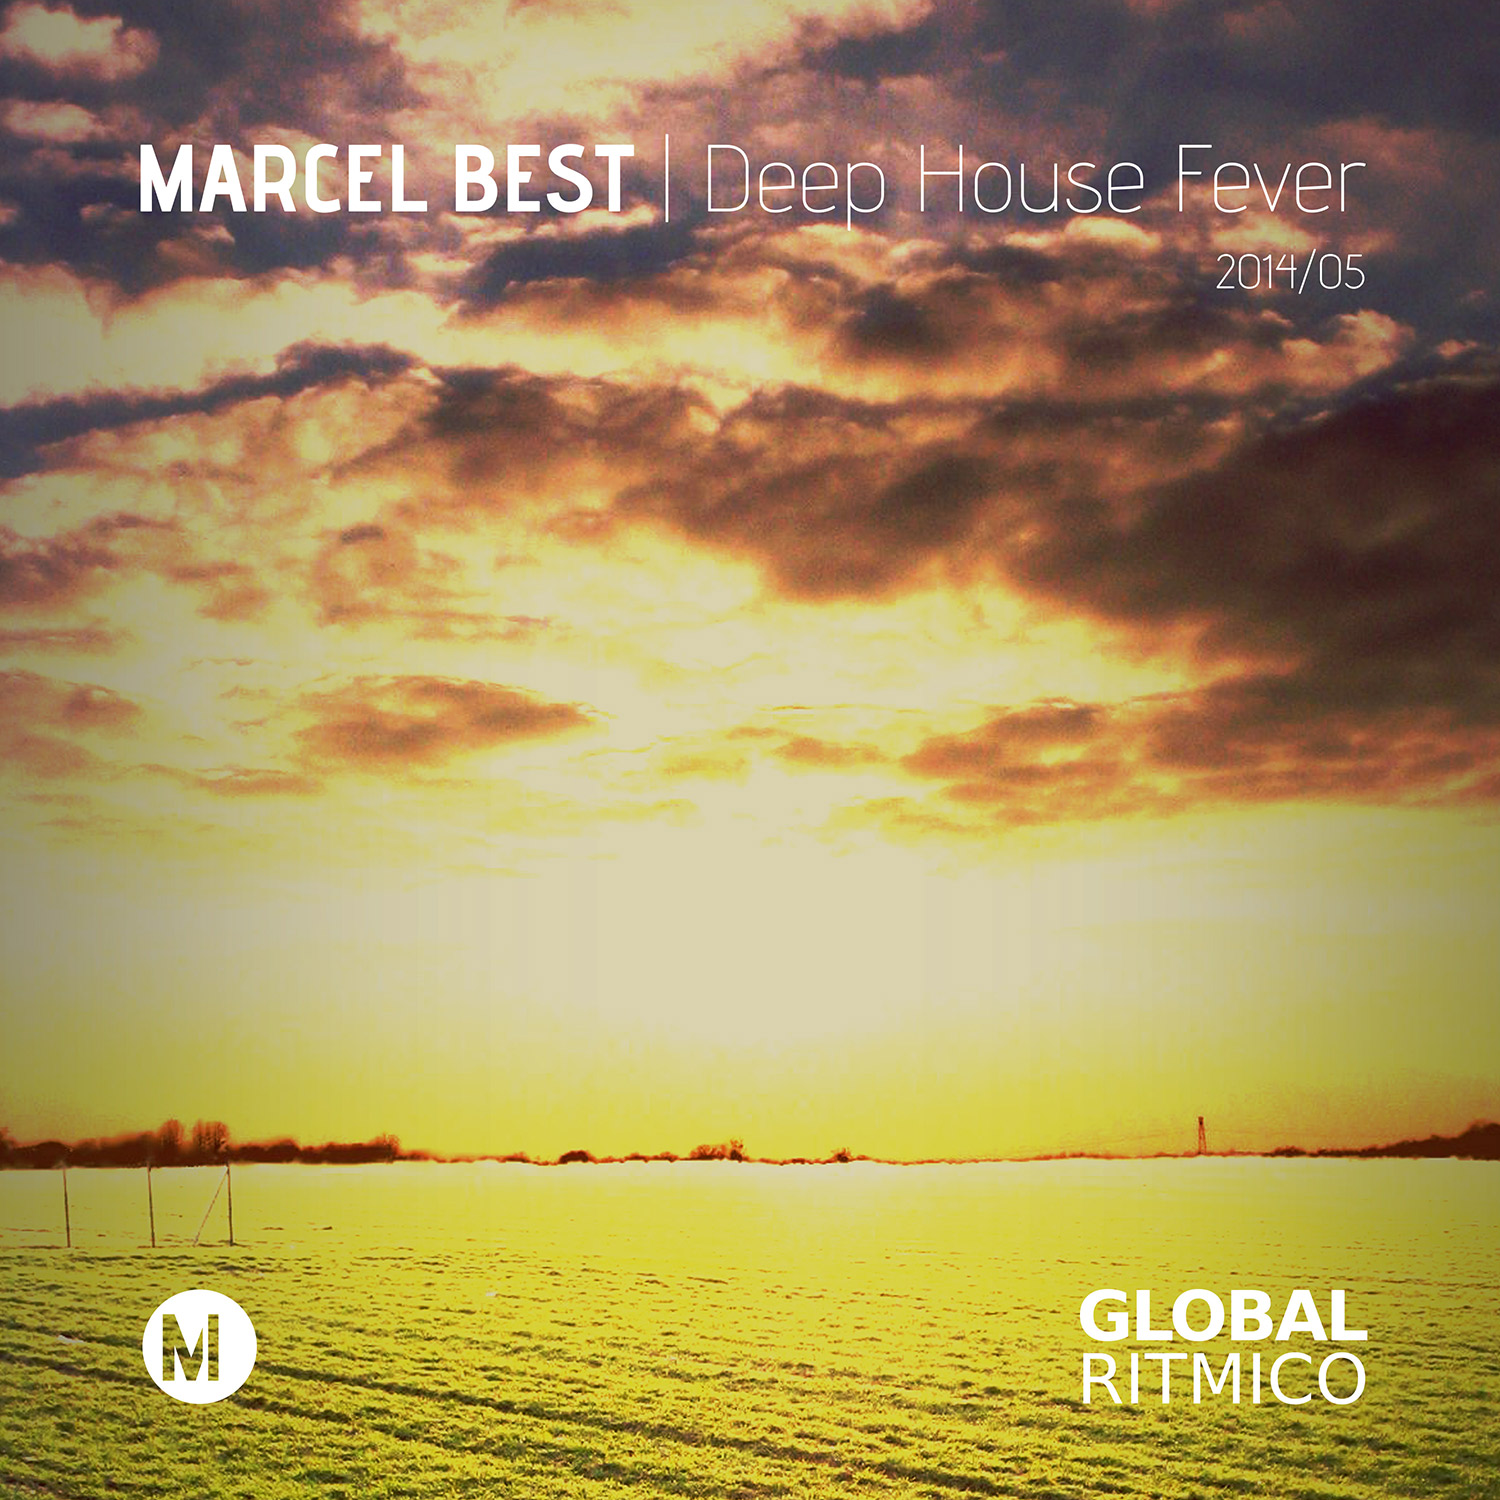 Marcel Best – Deep House Fever 2014 05